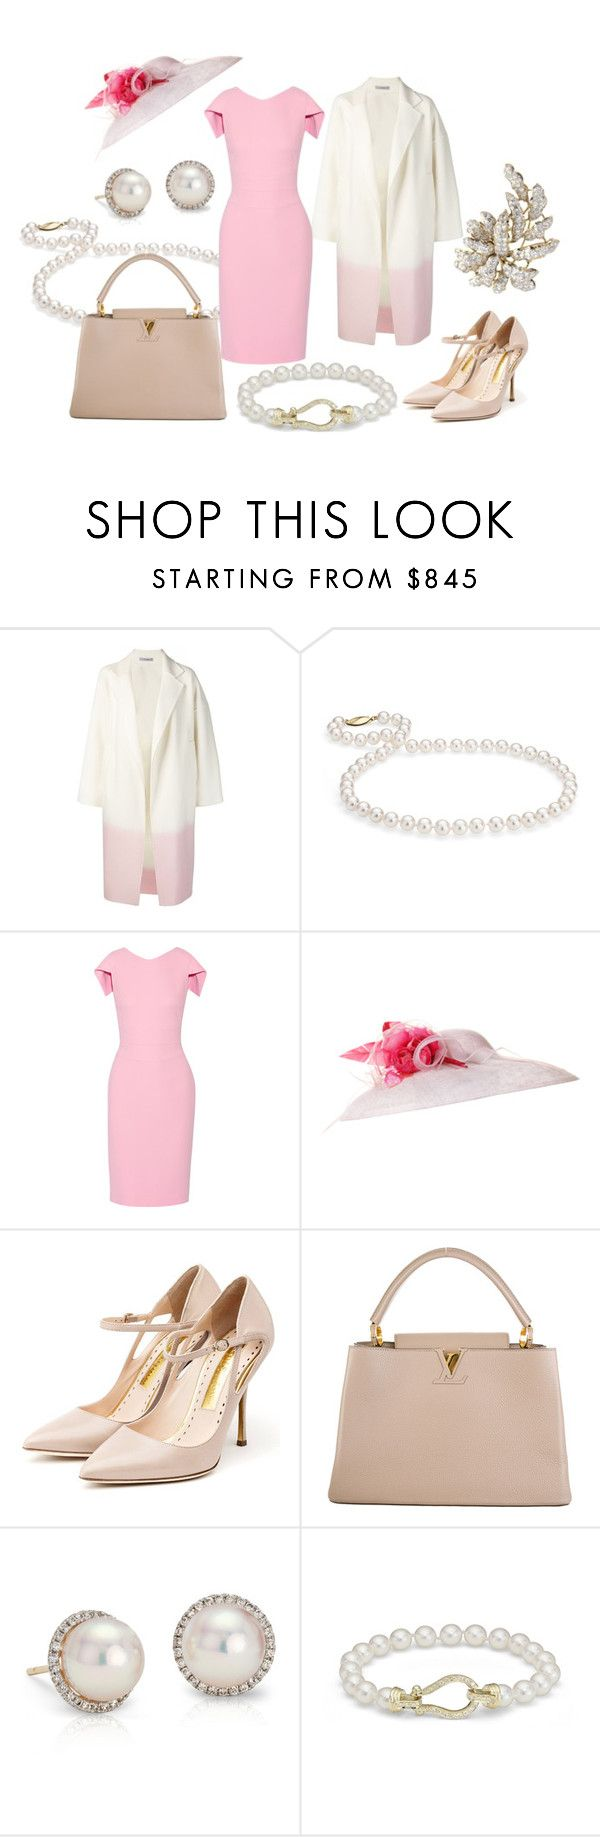 """""""State Visit from PRC Day 1: Arrival"""" by queenalex on Polyvore featuring Dušan, Blue Nile, Antonio Berardi, JANE TAYLOR MILLINERY, Rupert Sanderson, Louis Vuitton and country"""